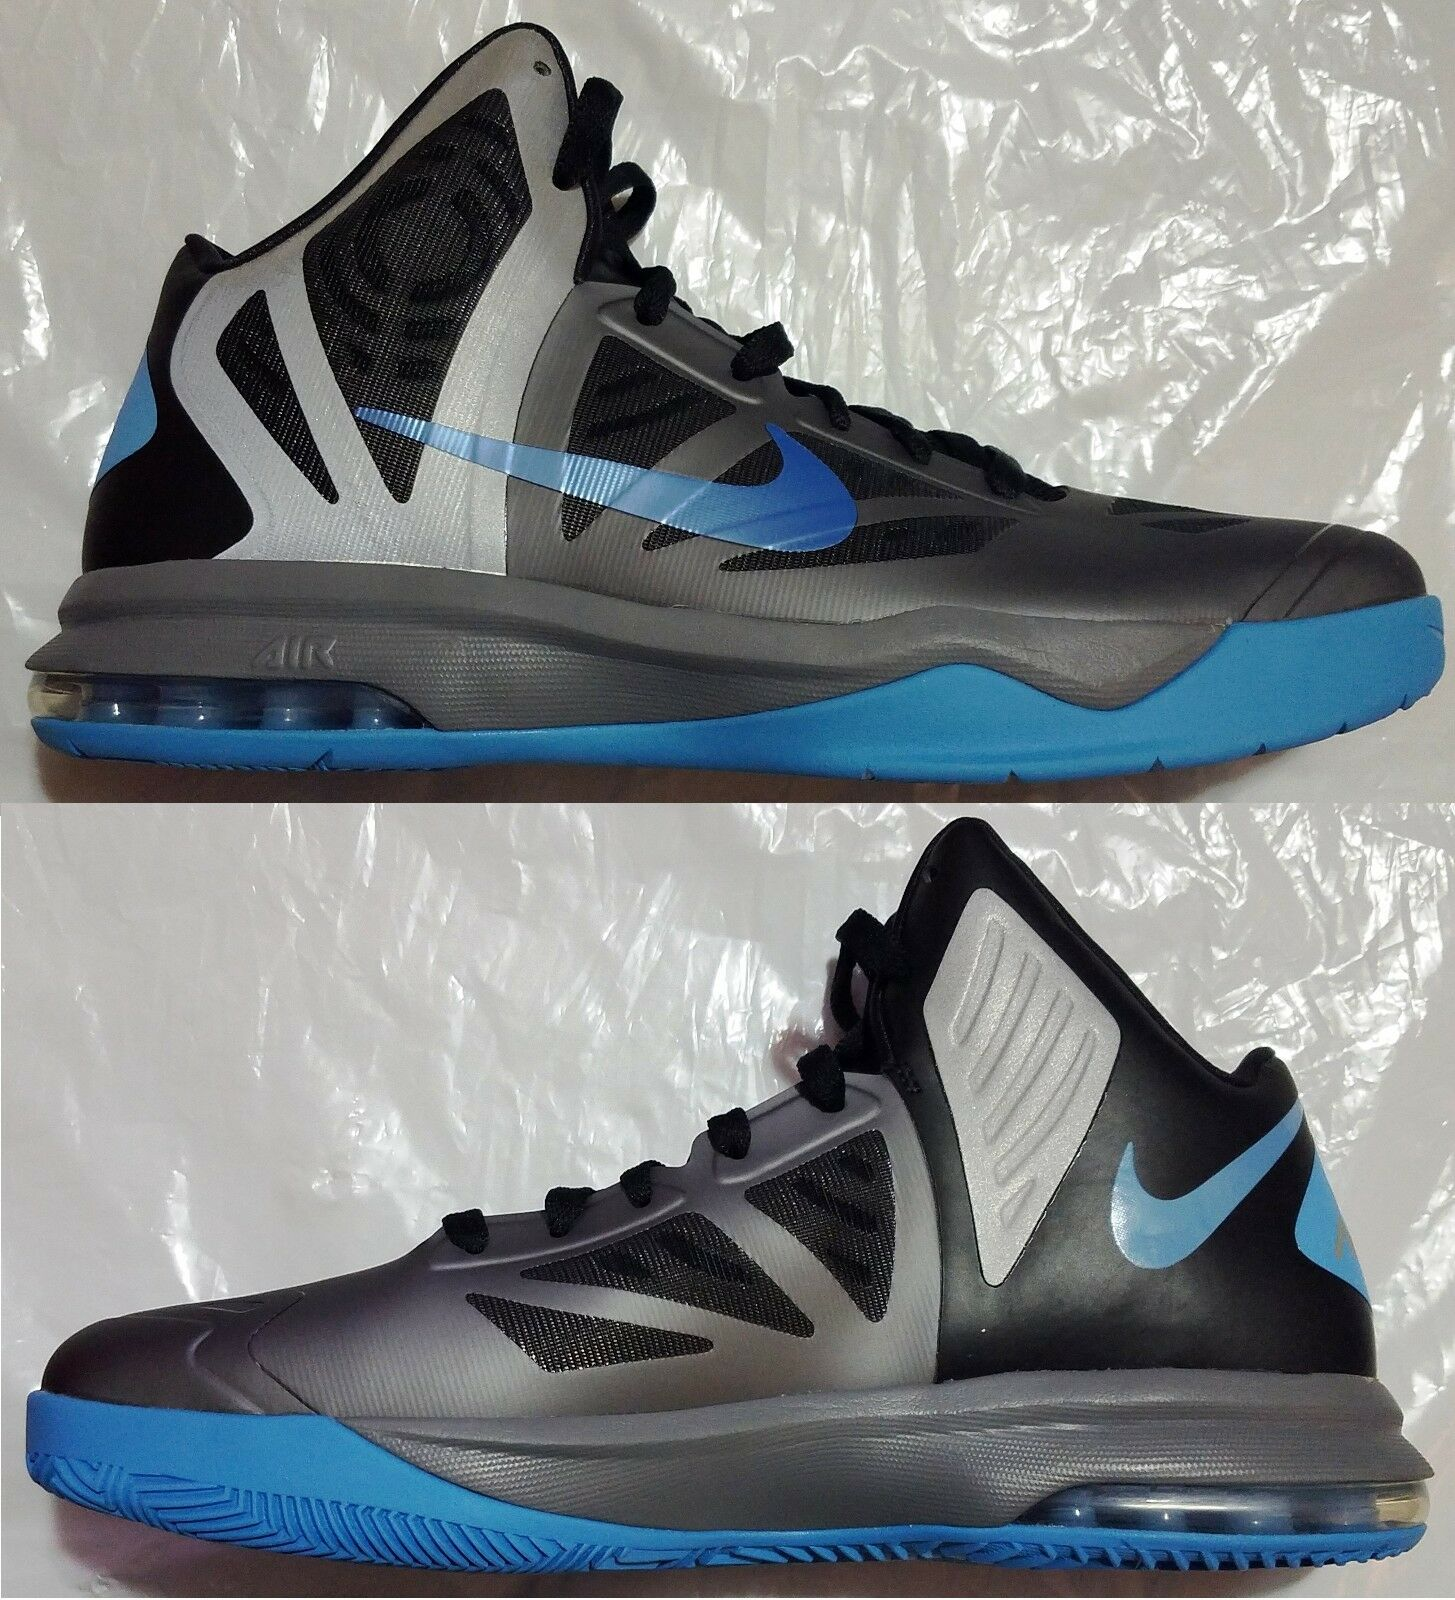 NIKE HYPERAGGRESSOR RFLCT MEN'S BASKETBALL COOL GREY - UNIVERSITY BLUE AUTHENTIC Wild casual shoes